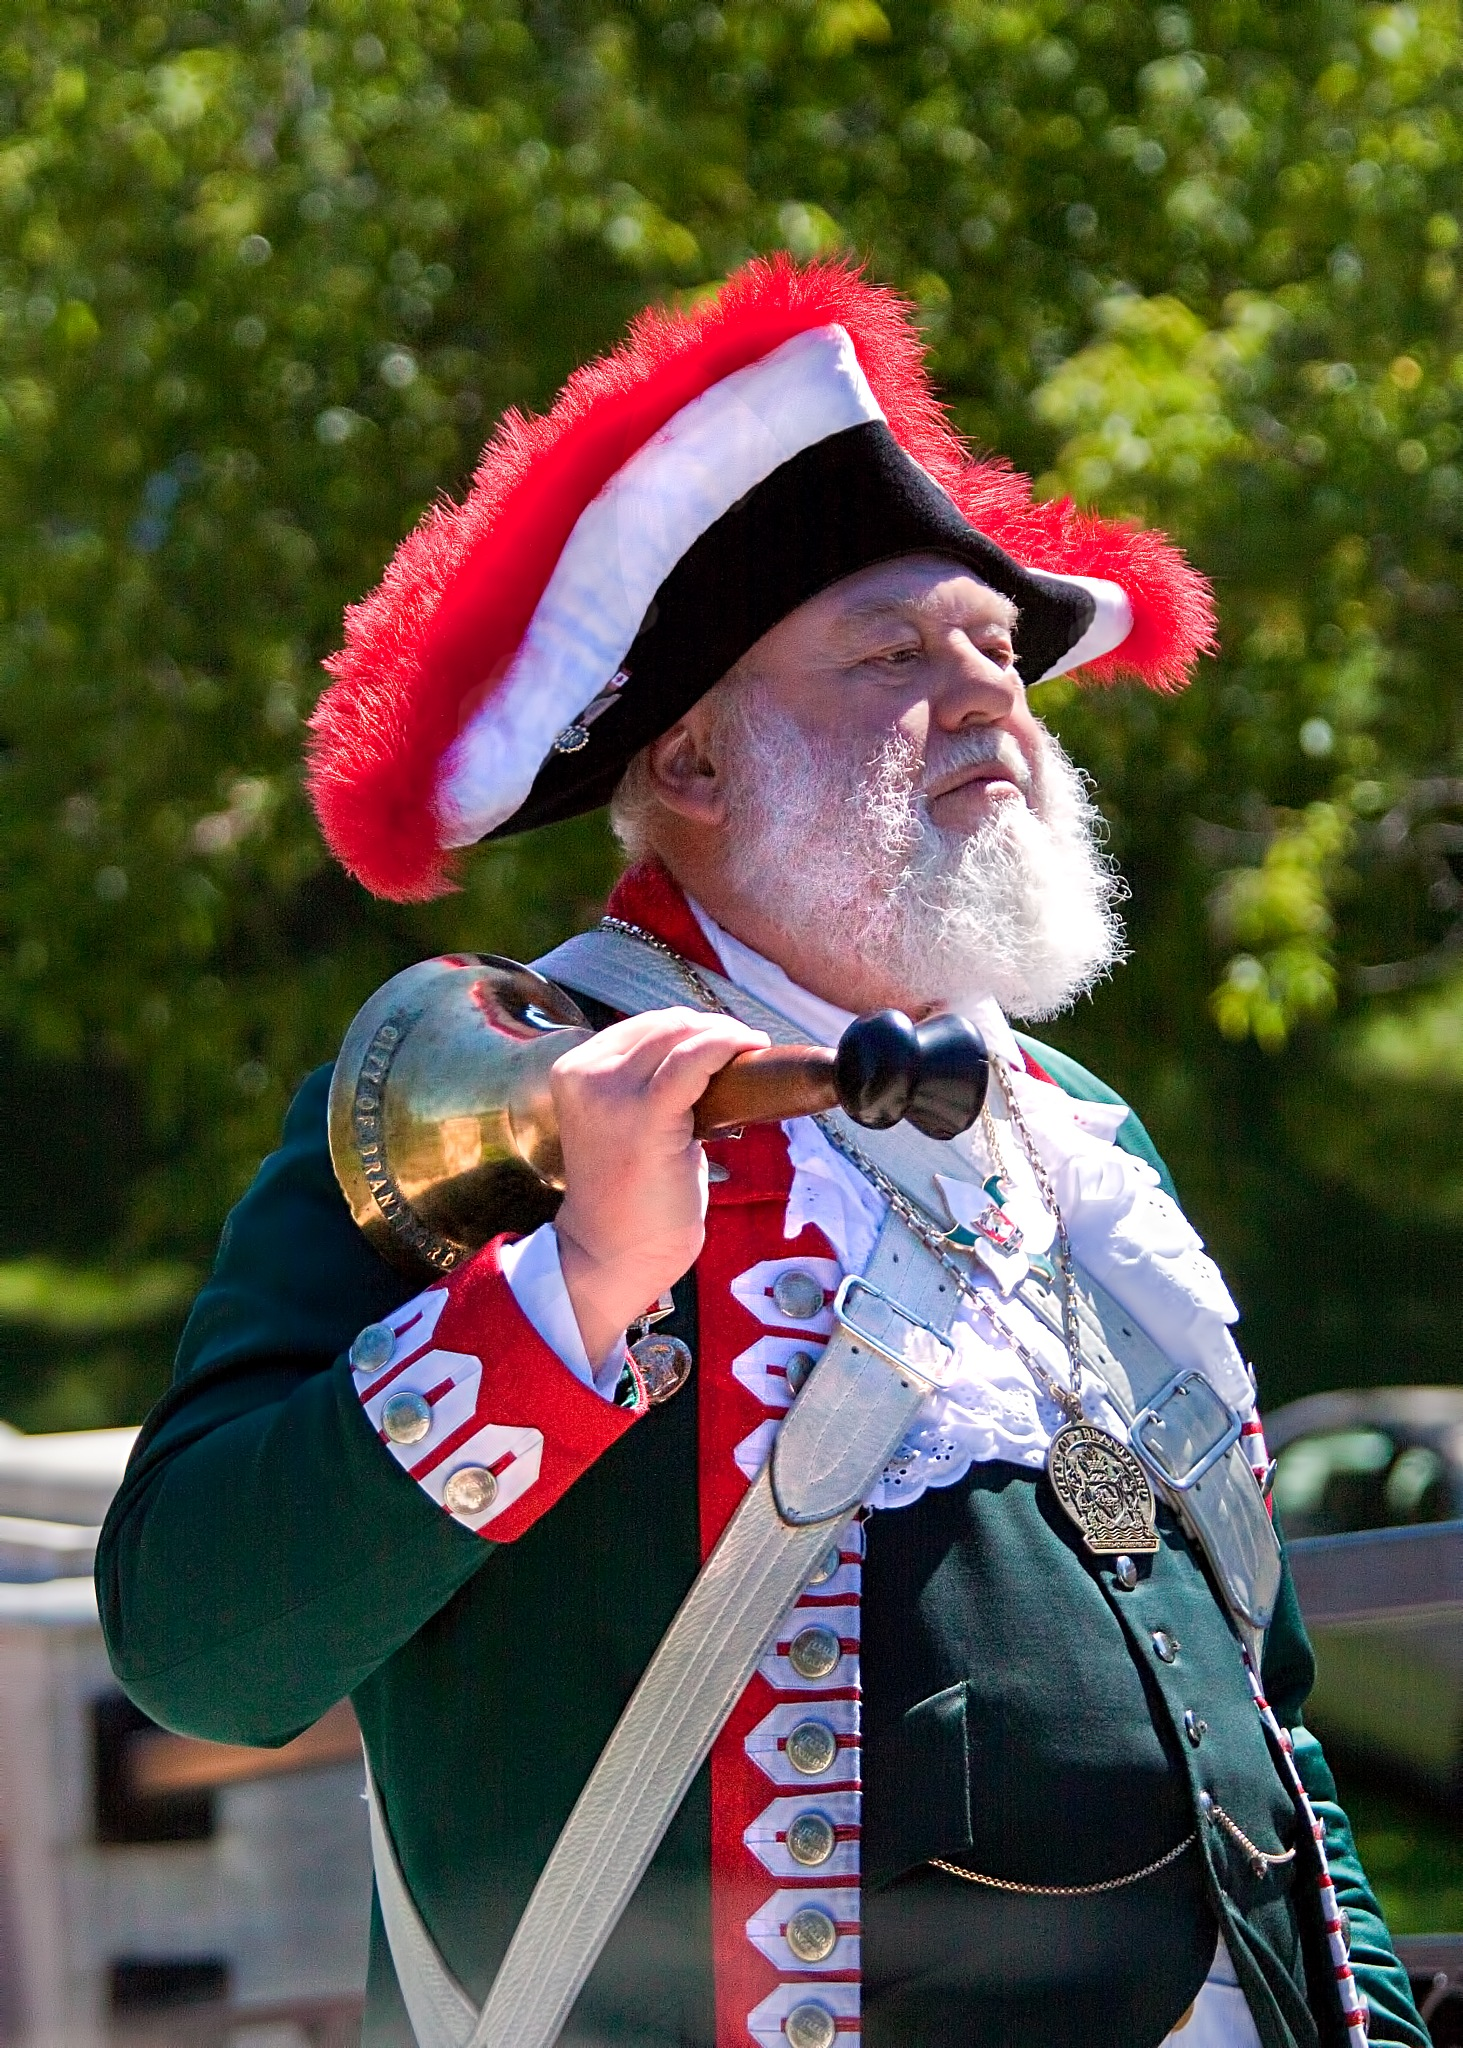 Town Cryer by Bobjb